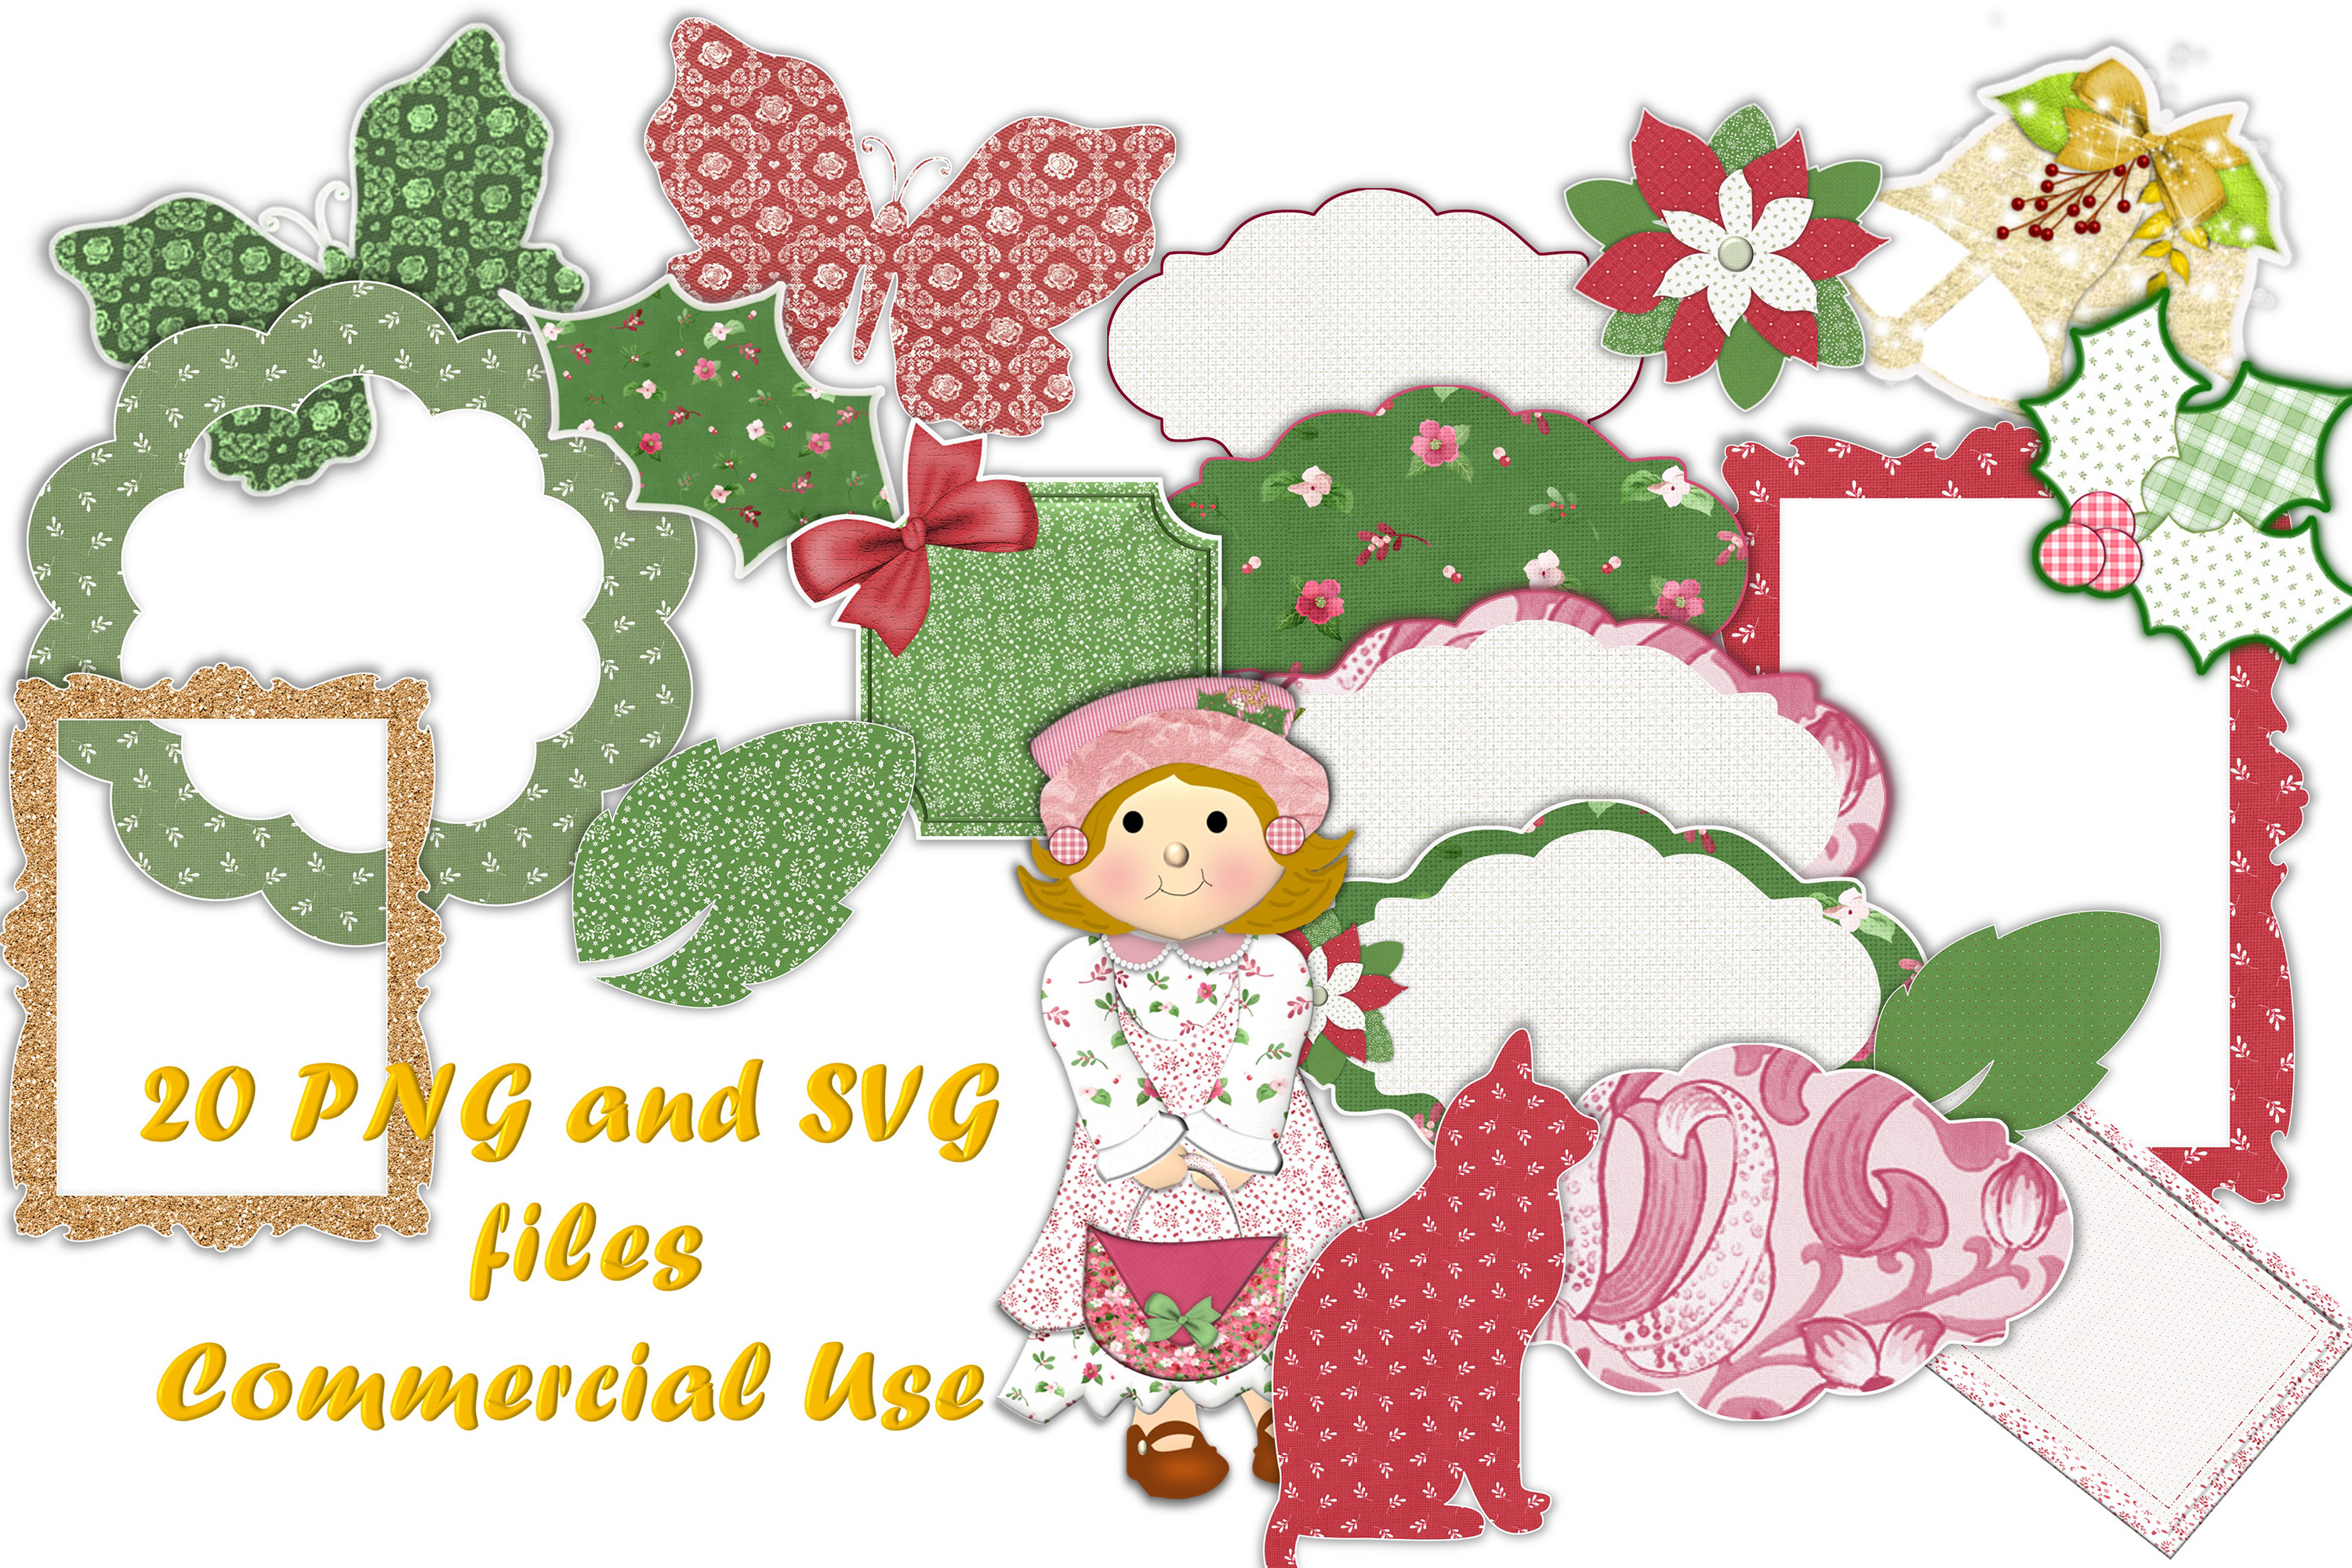 20 PNG and SVG files for Commercial Use Christmas Theme example image 1